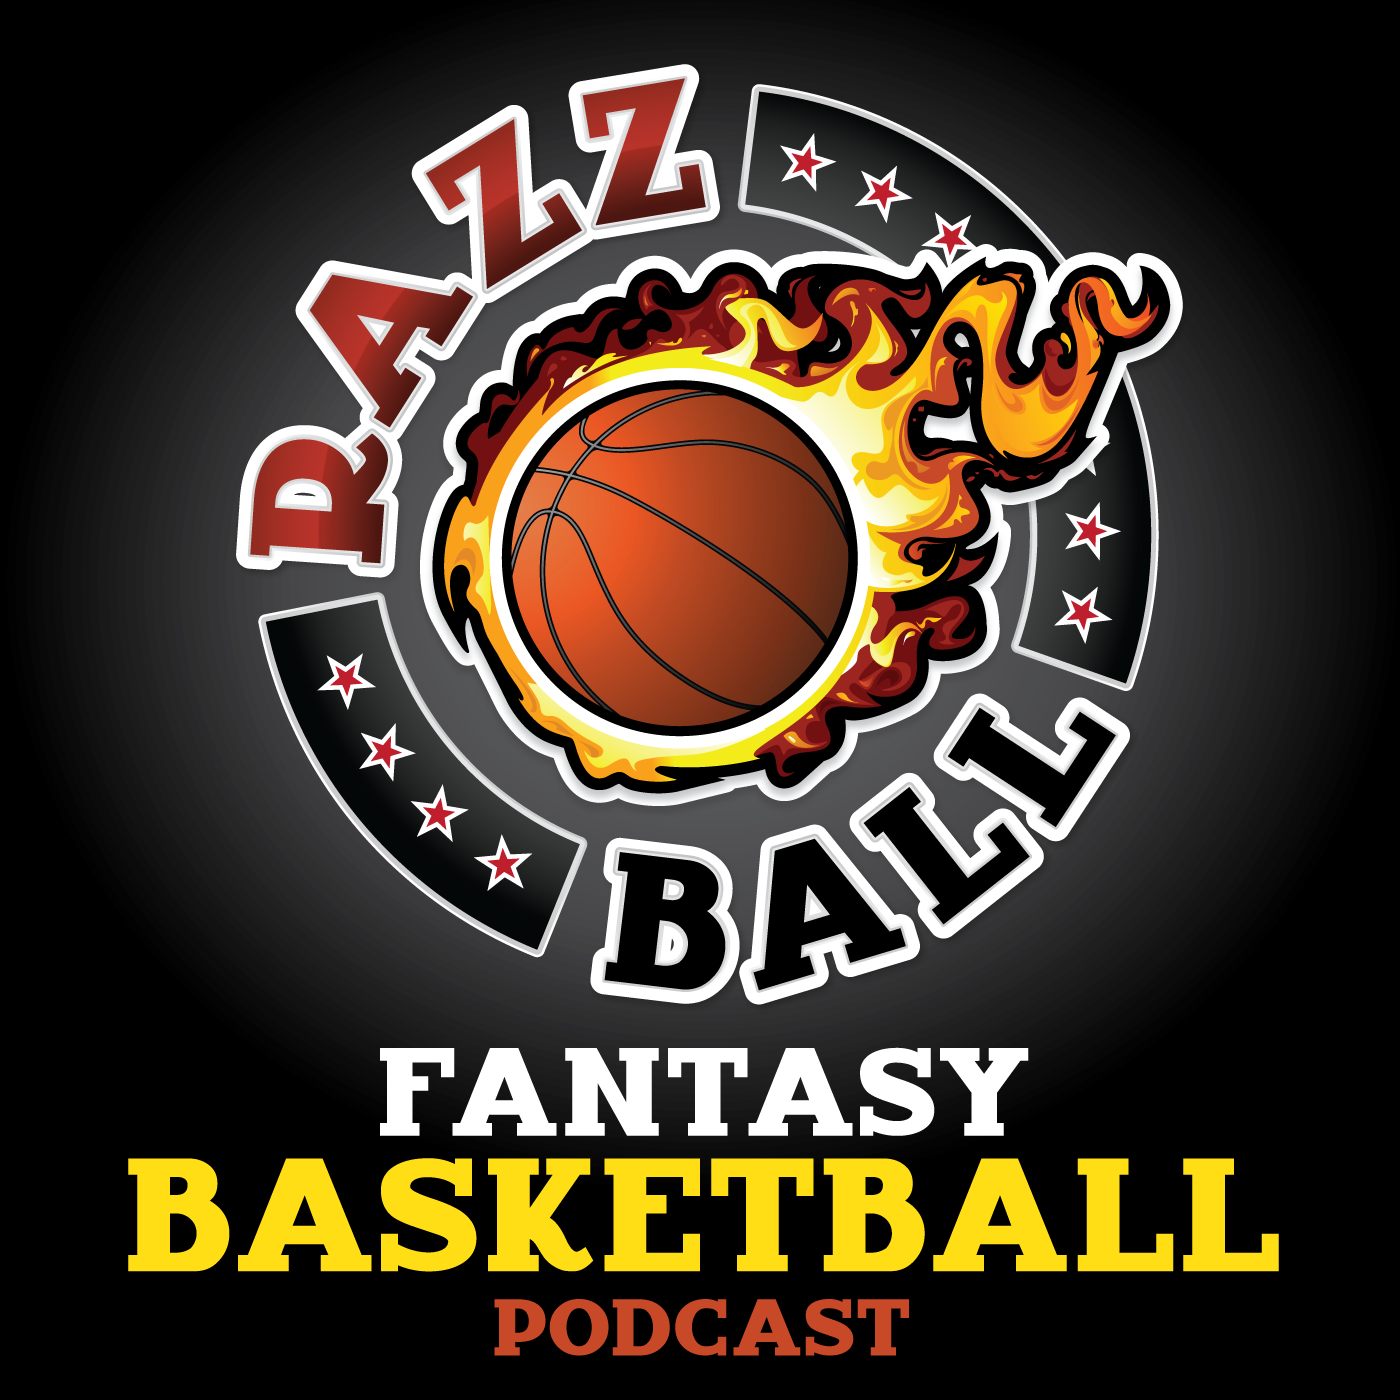 Fantasy Basketball Podcast at Razzball